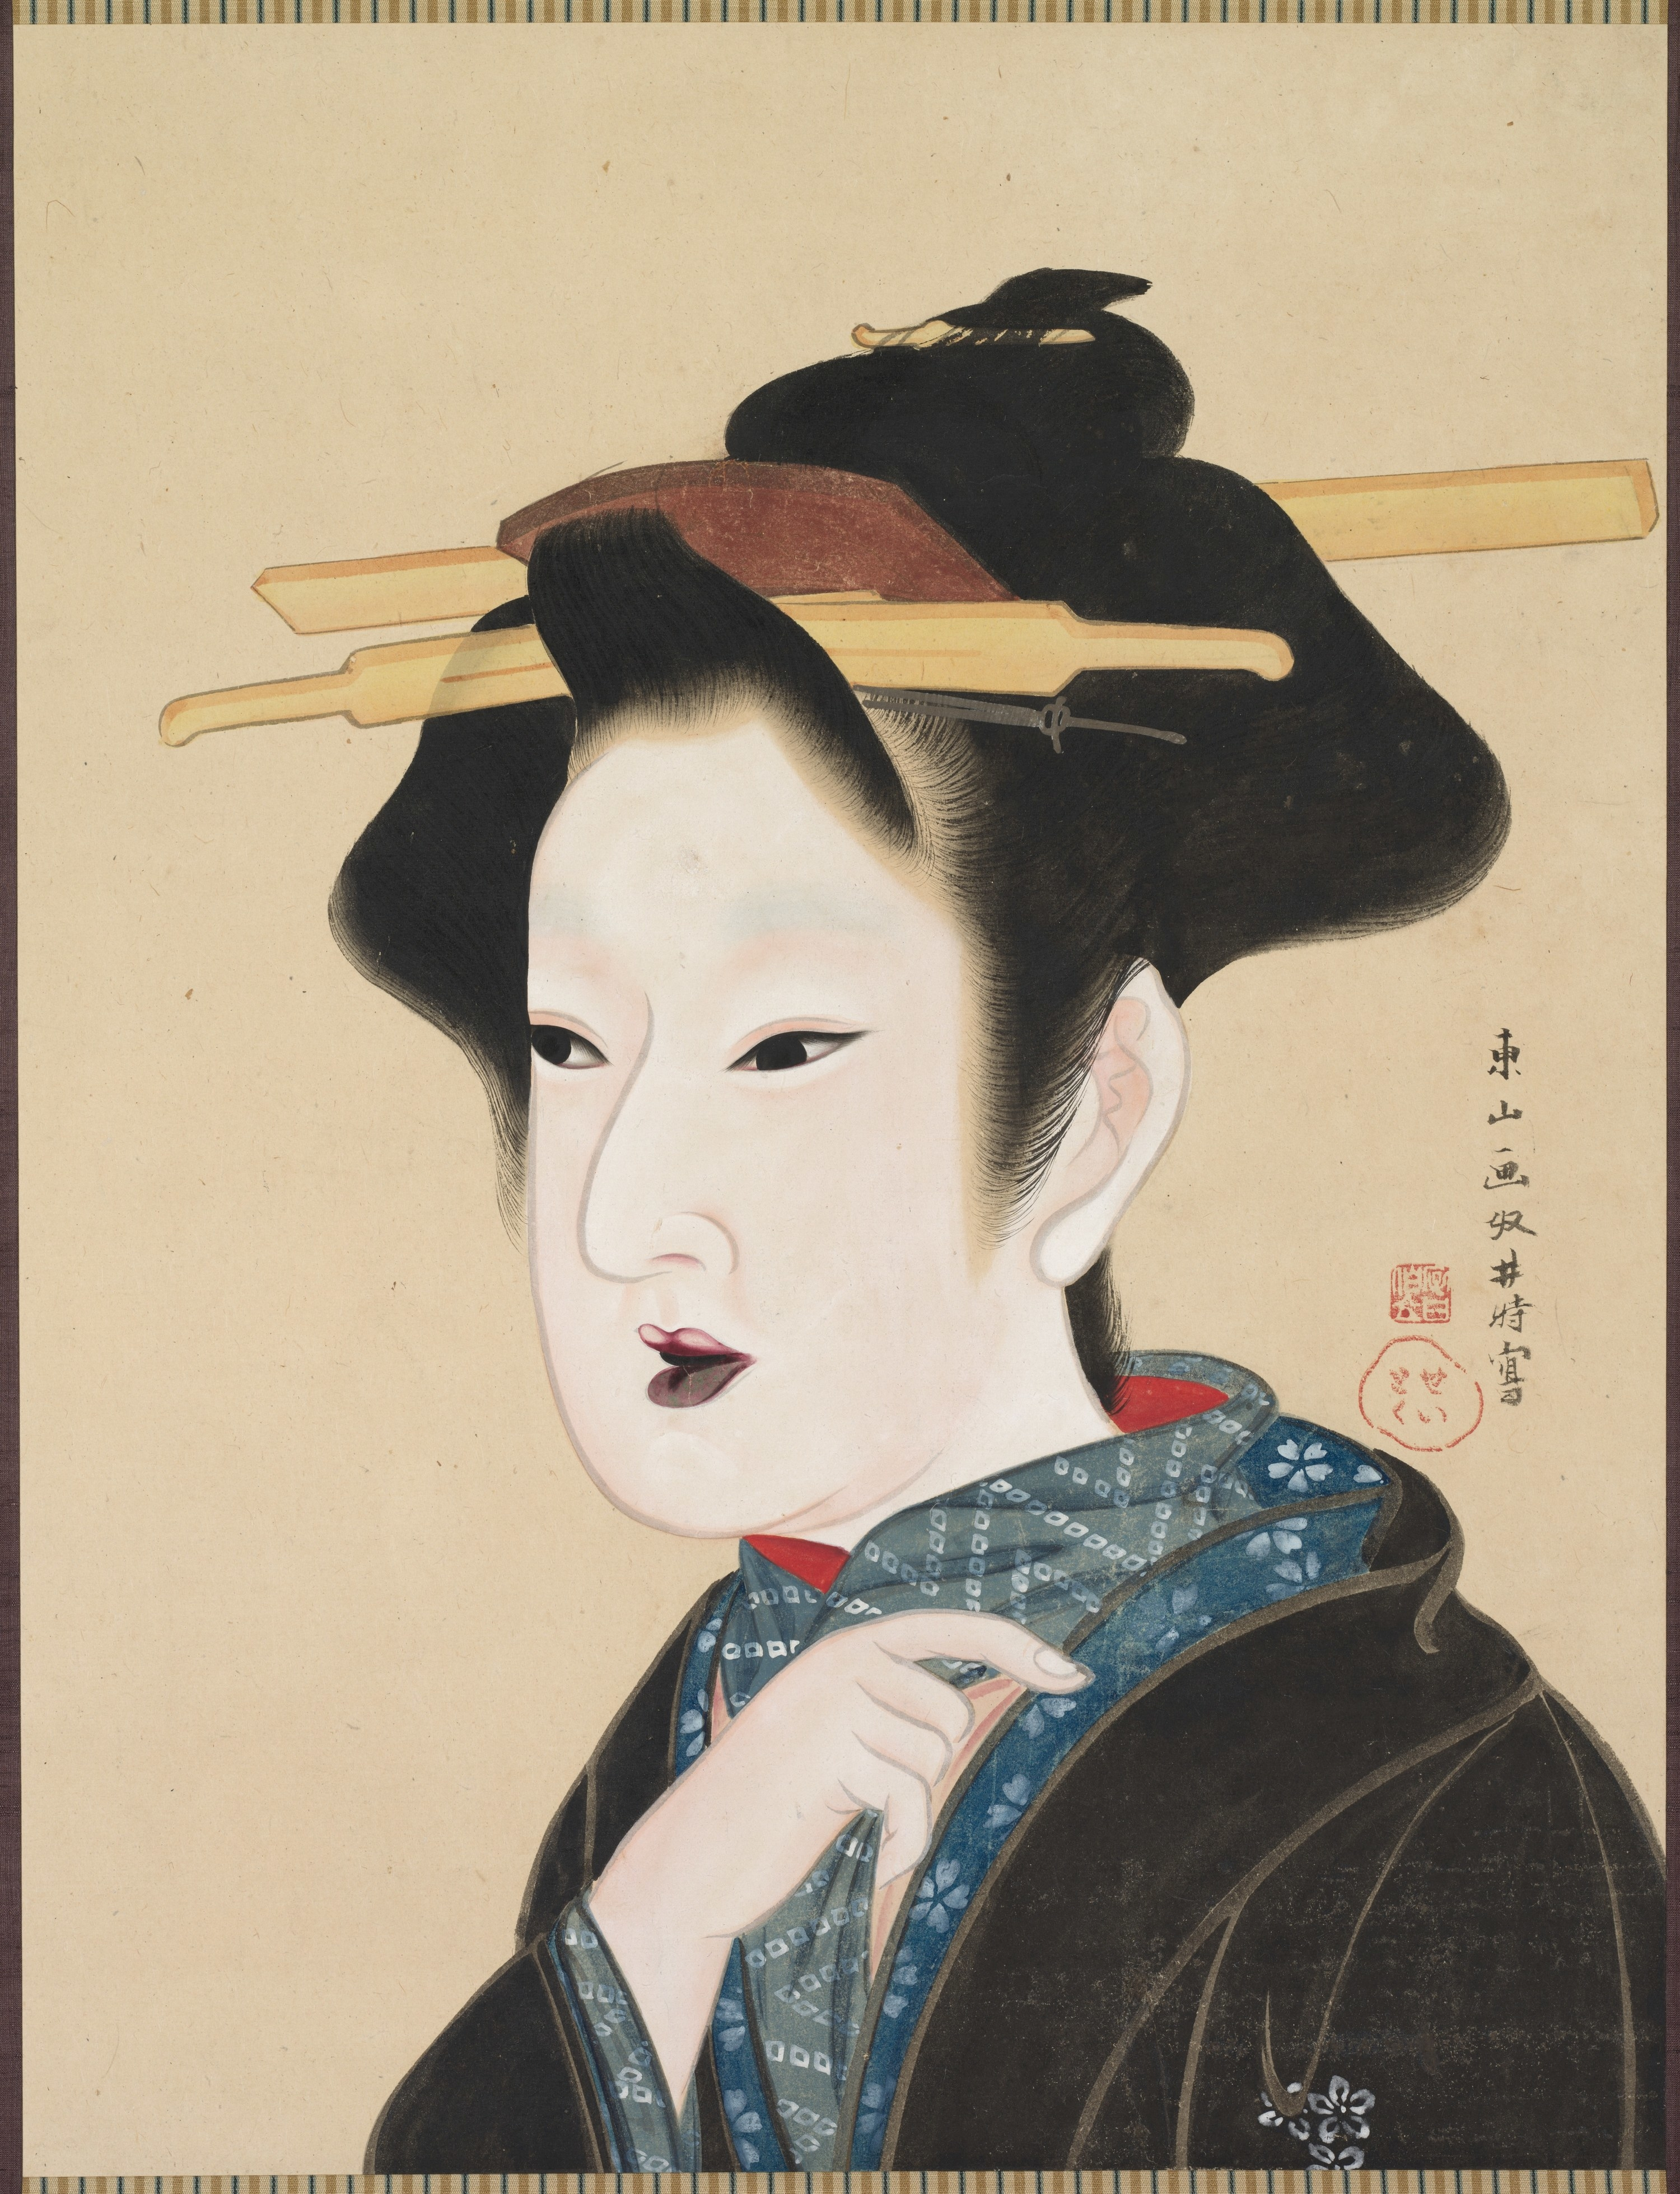 Photo of Japanese woman with blackened lips to signal her teeth blackening technique